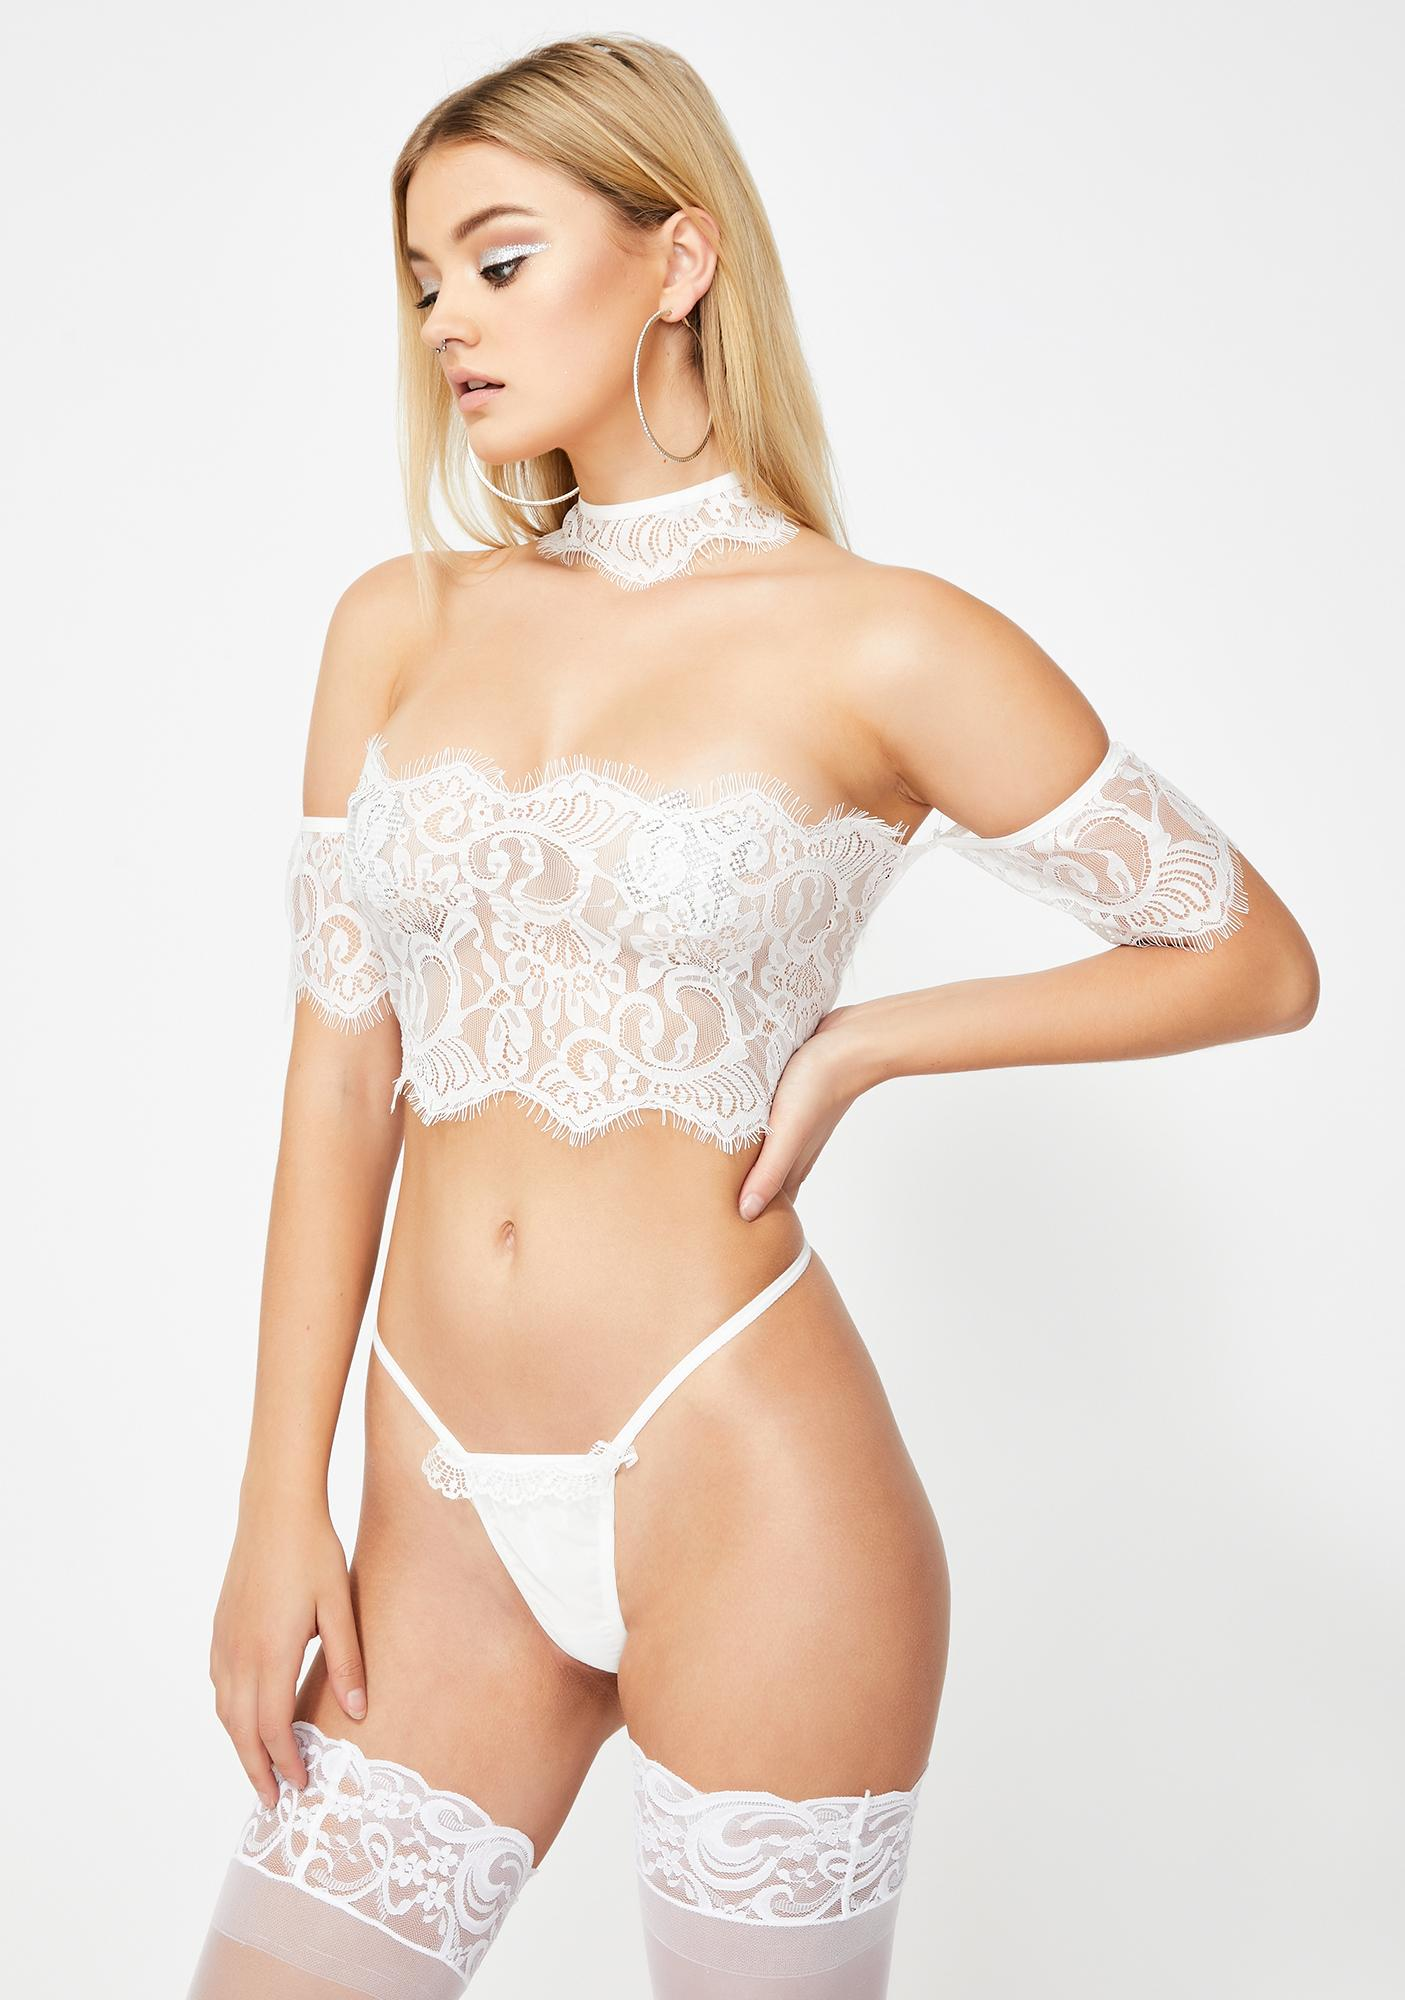 Purely Spellbound Lace Set